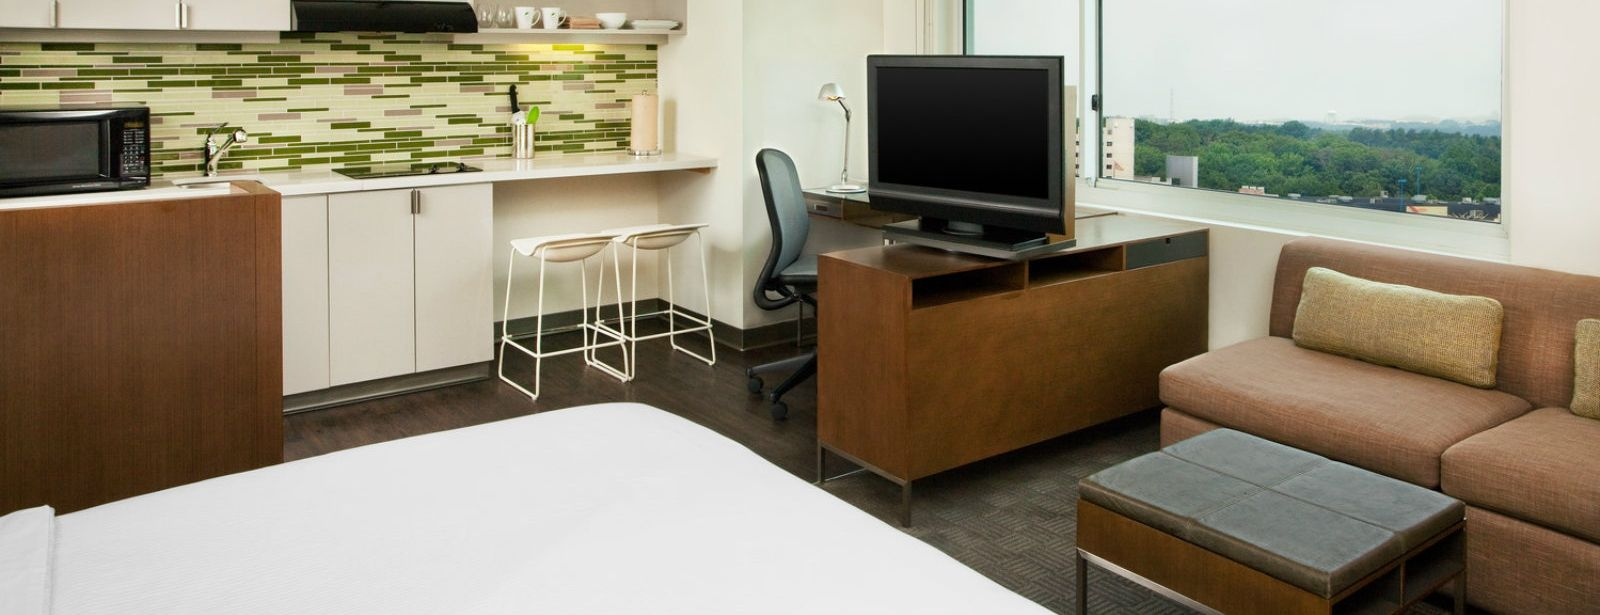 Arundel Mills Accommodations - Accessible Room